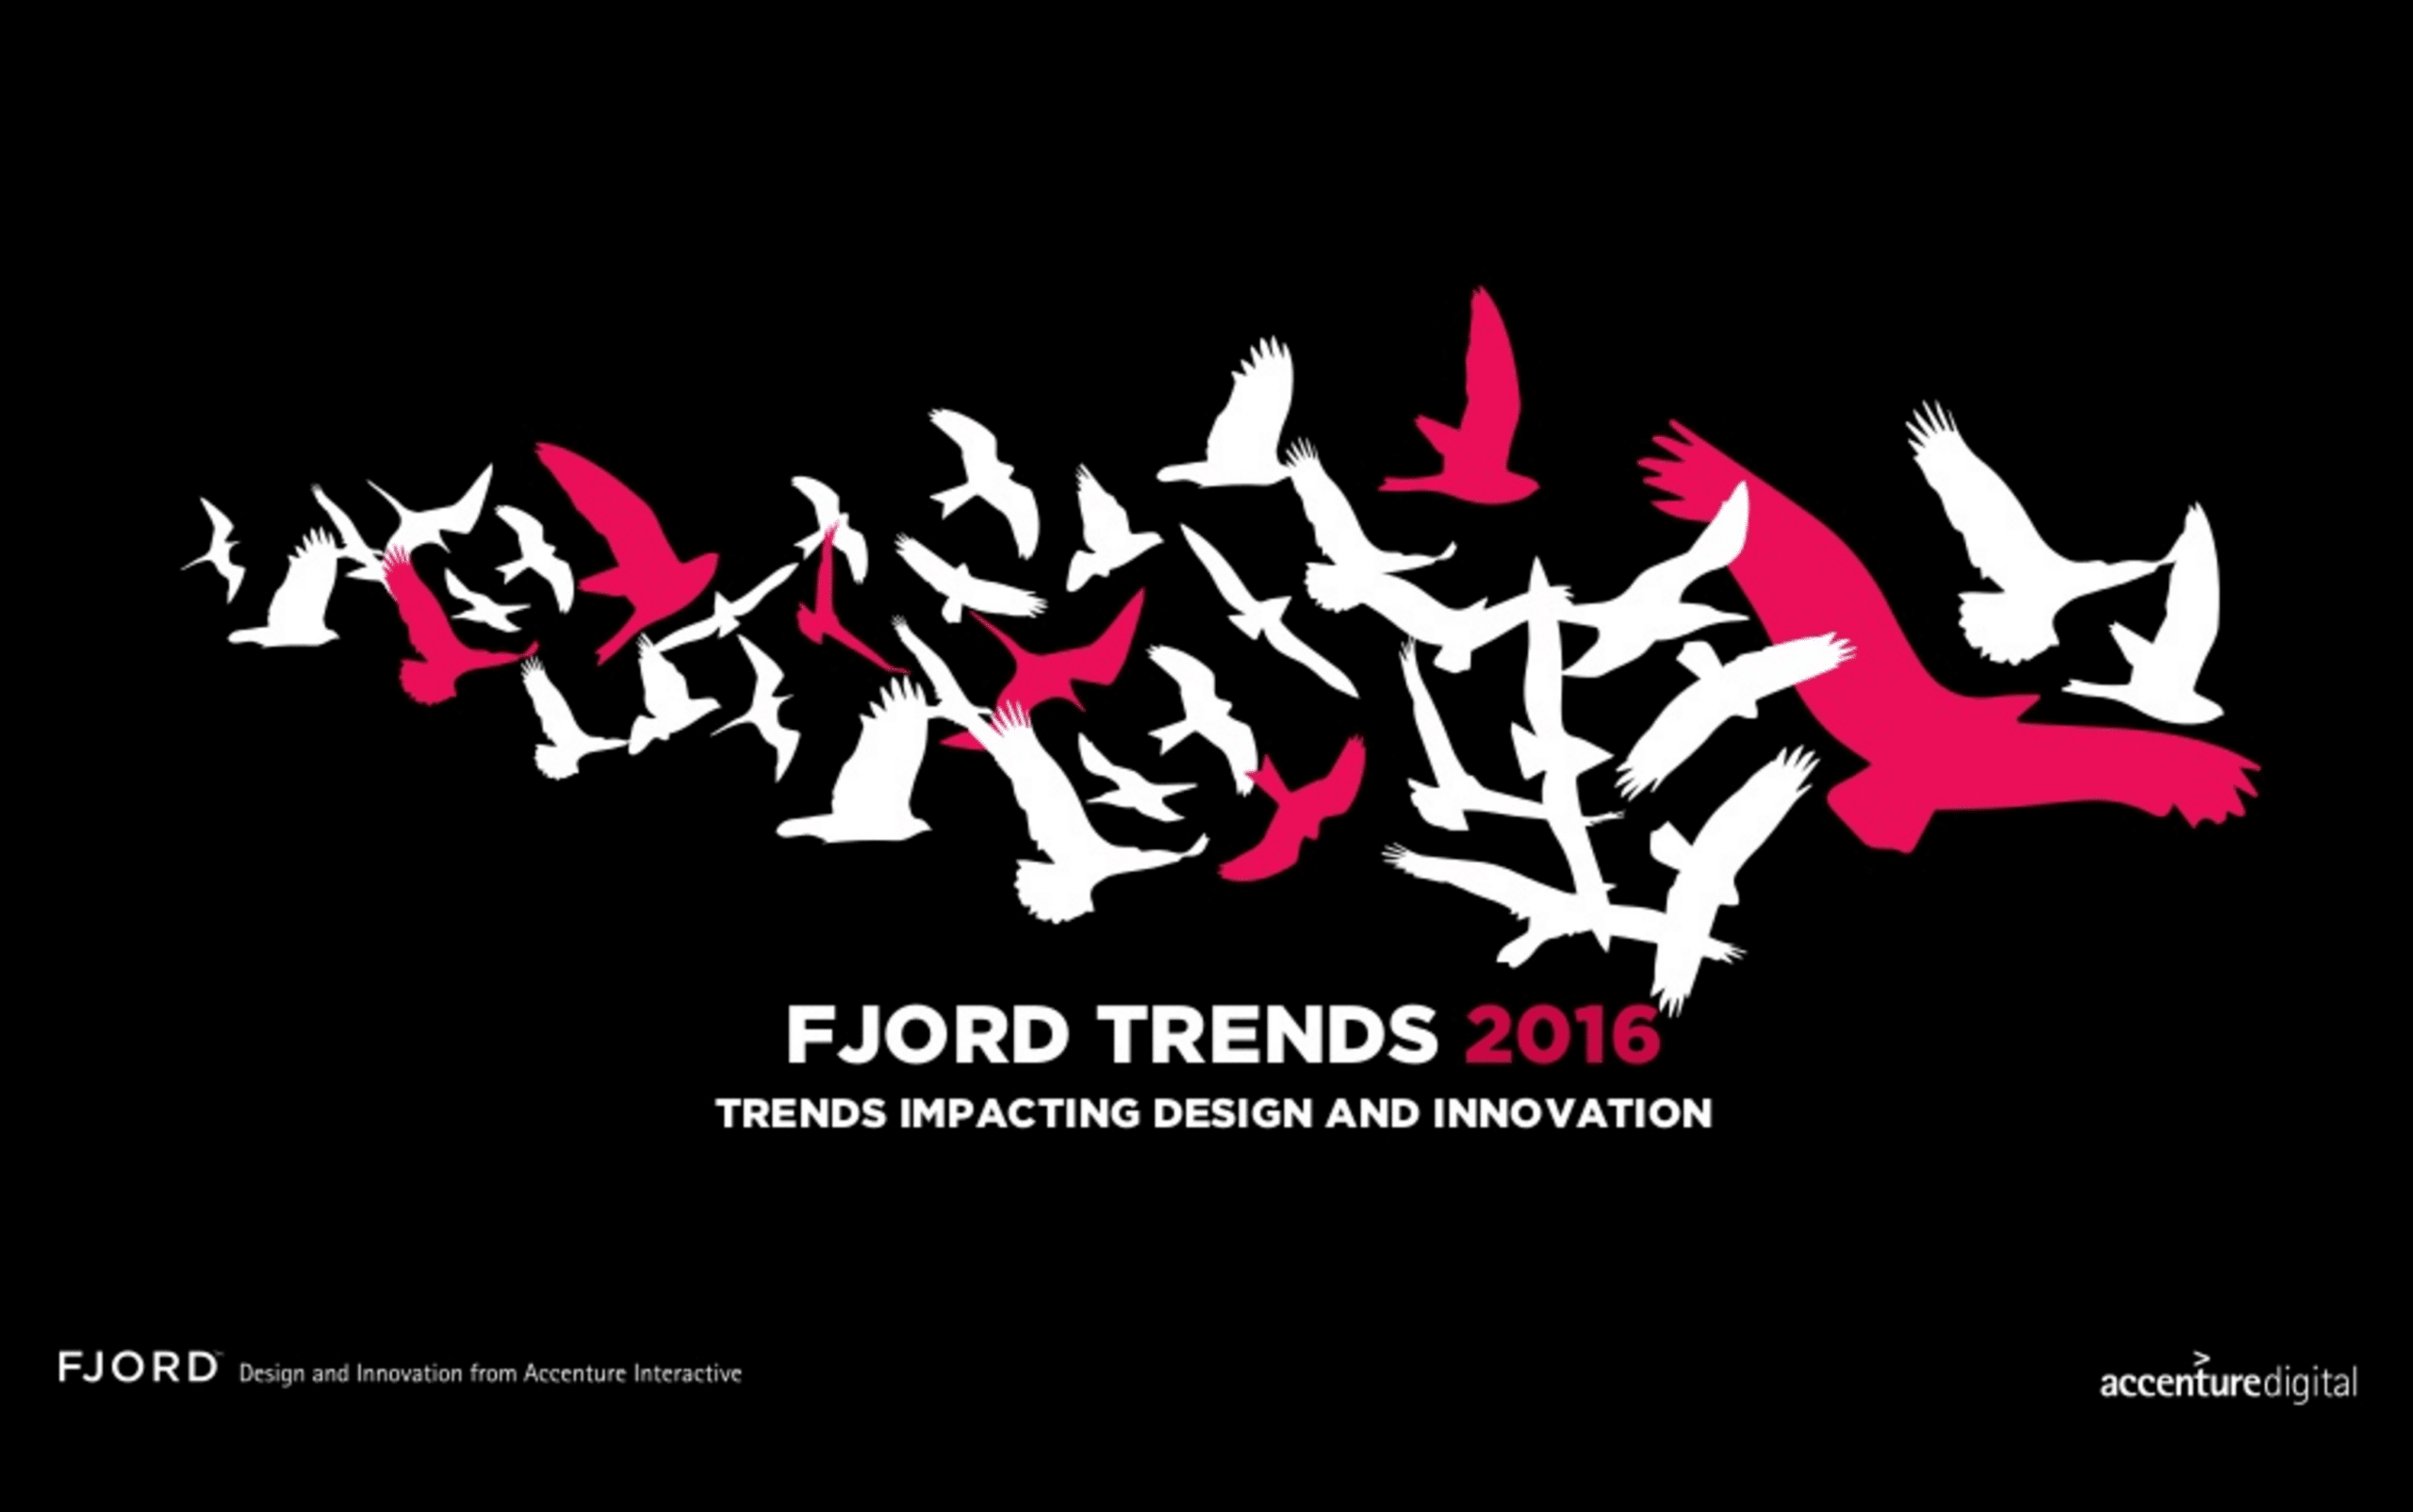 Fjord Trends 2016